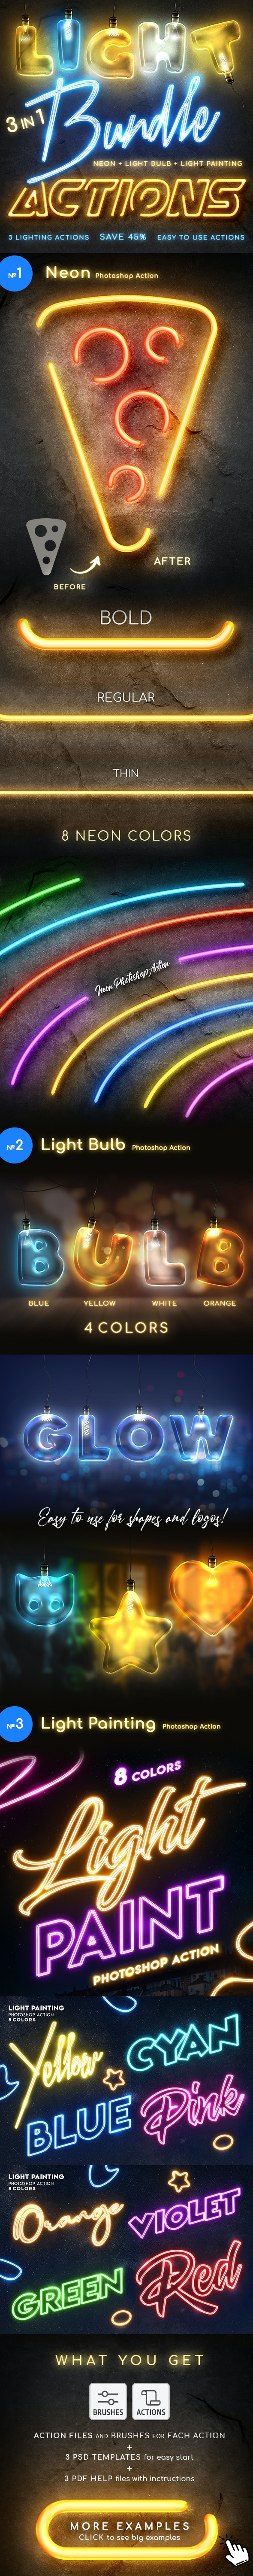 Lighting Photoshop Actions Bundle - Text Effects Actions